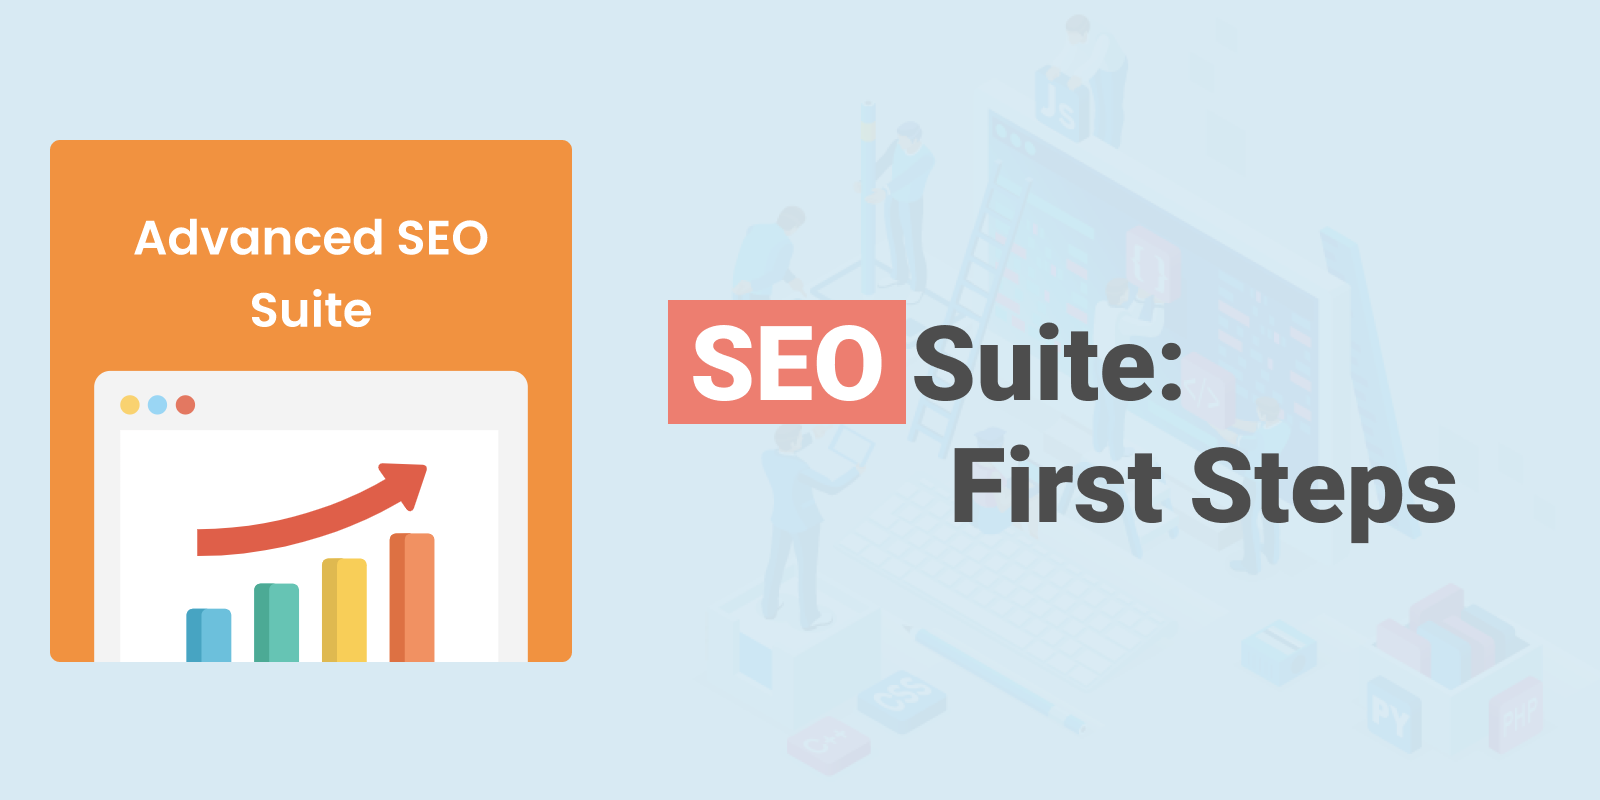 Advanced SEO Suite: First Steps